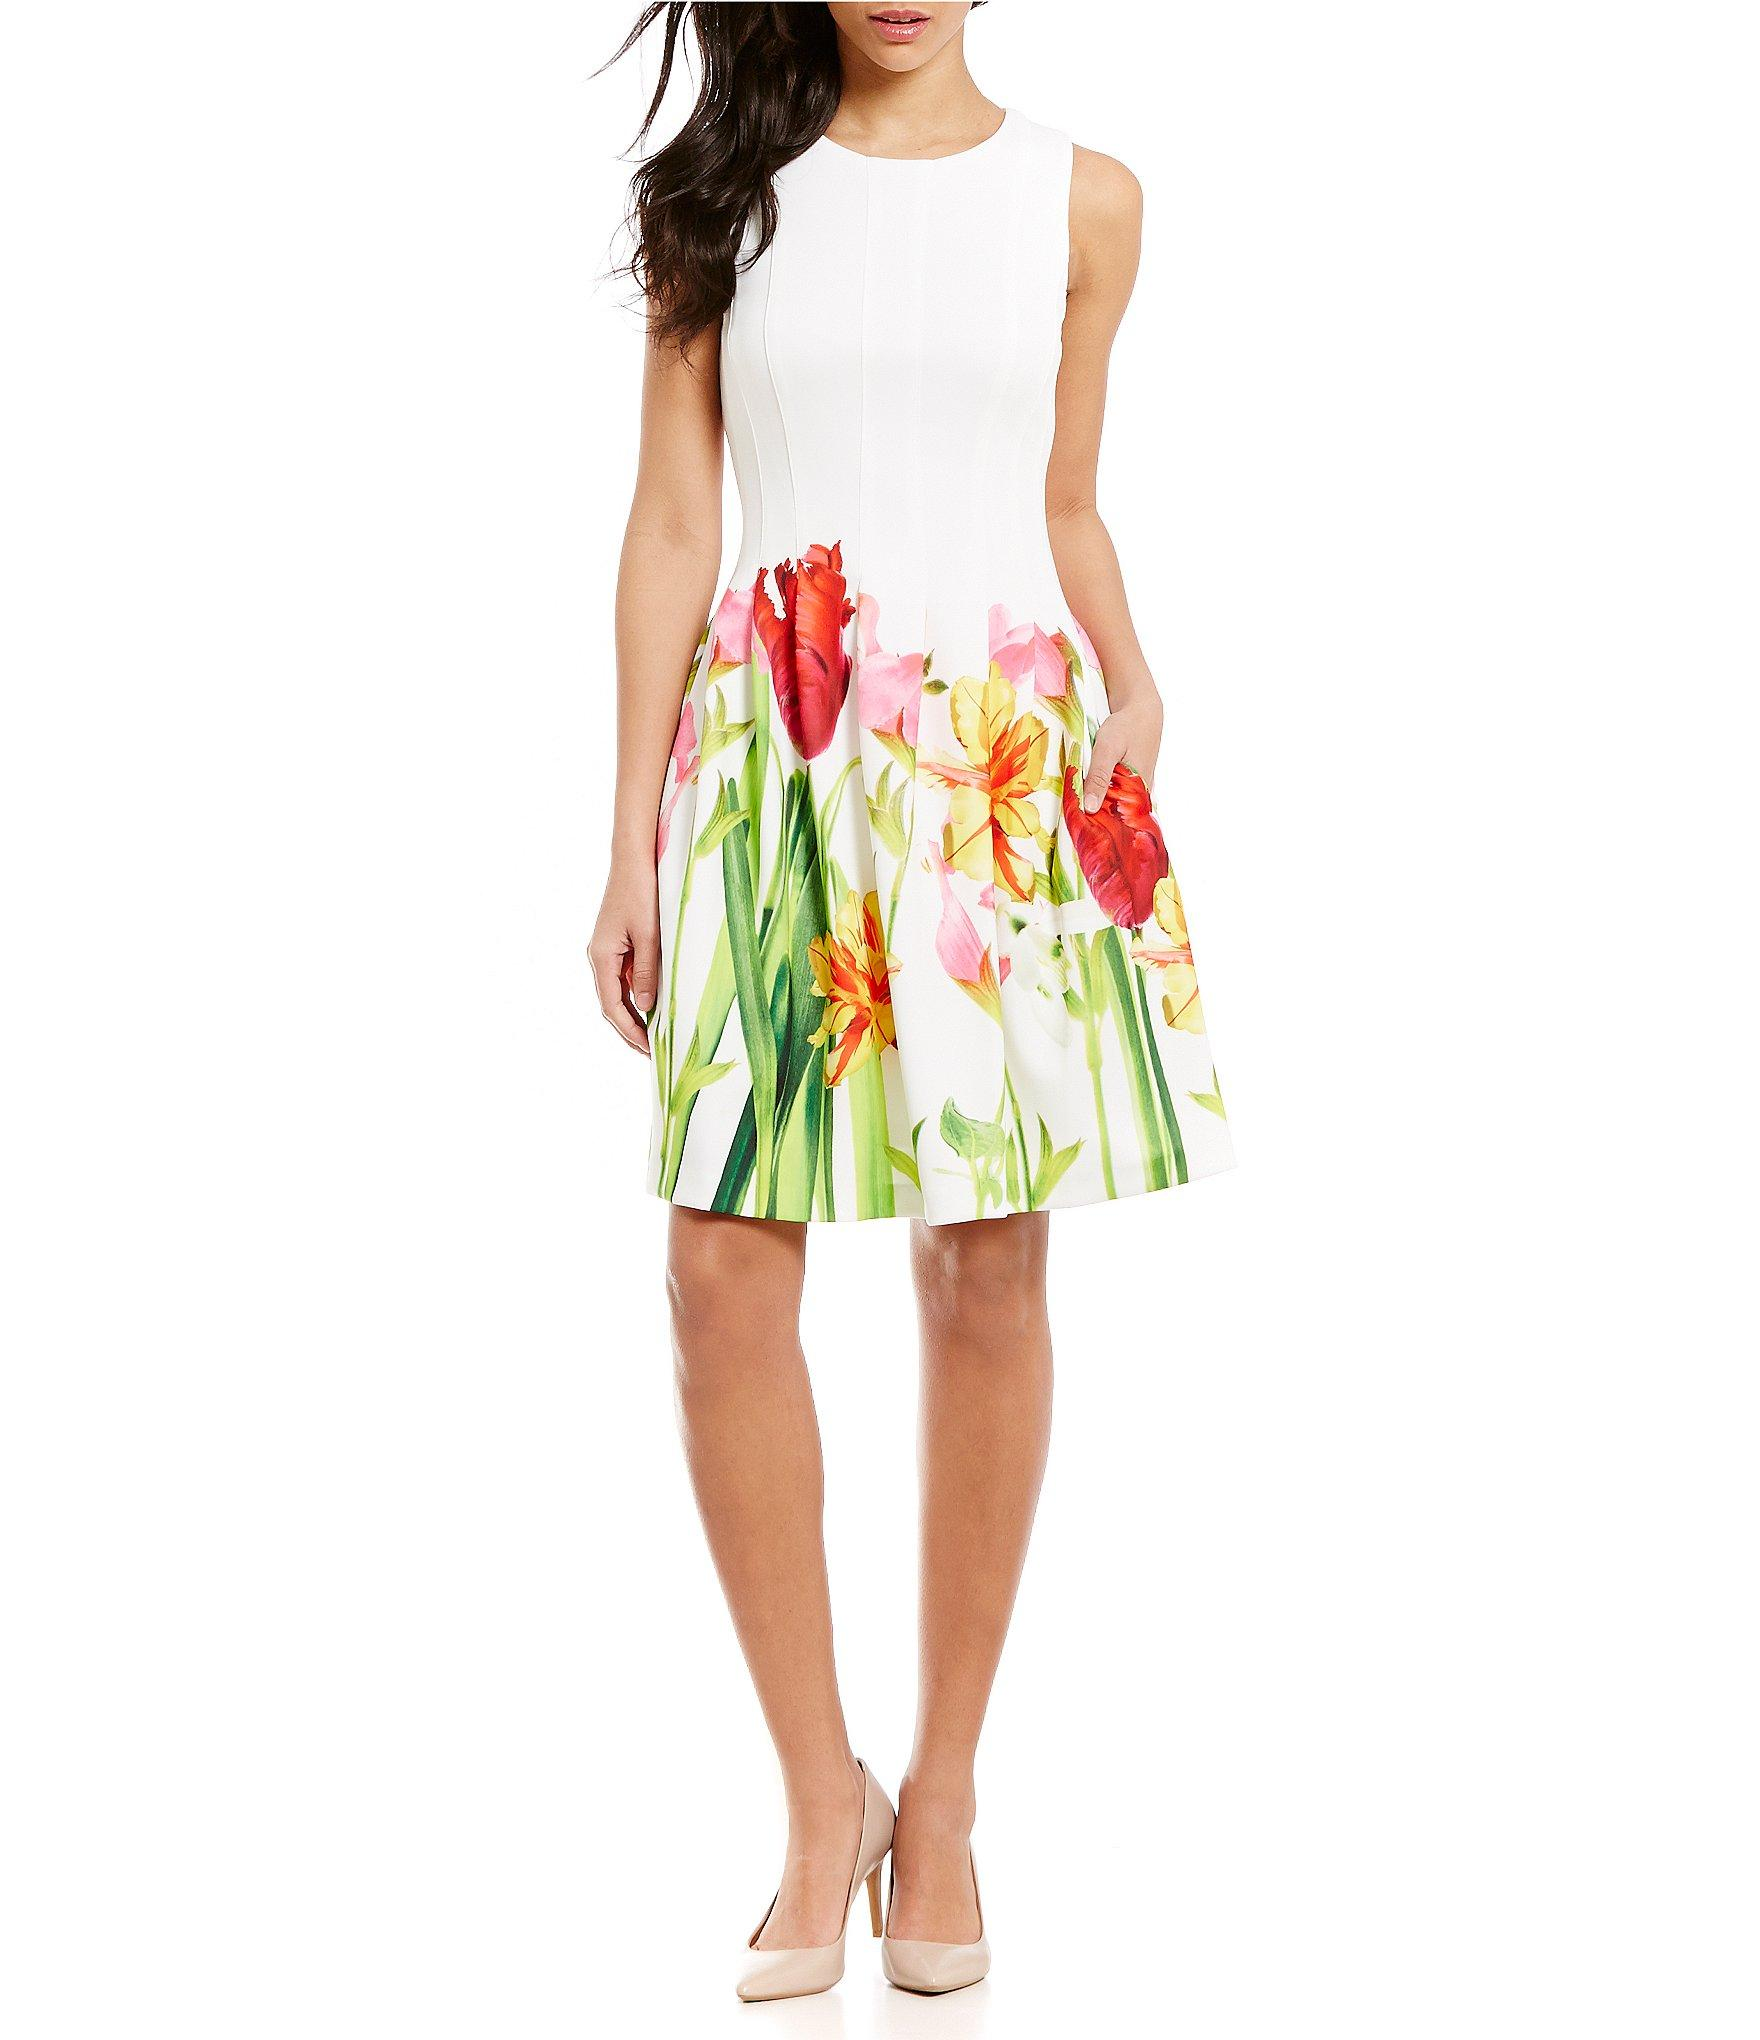 05a180e2fa Lyst - Calvin Klein Floral-hem Fit-and-flare Dress